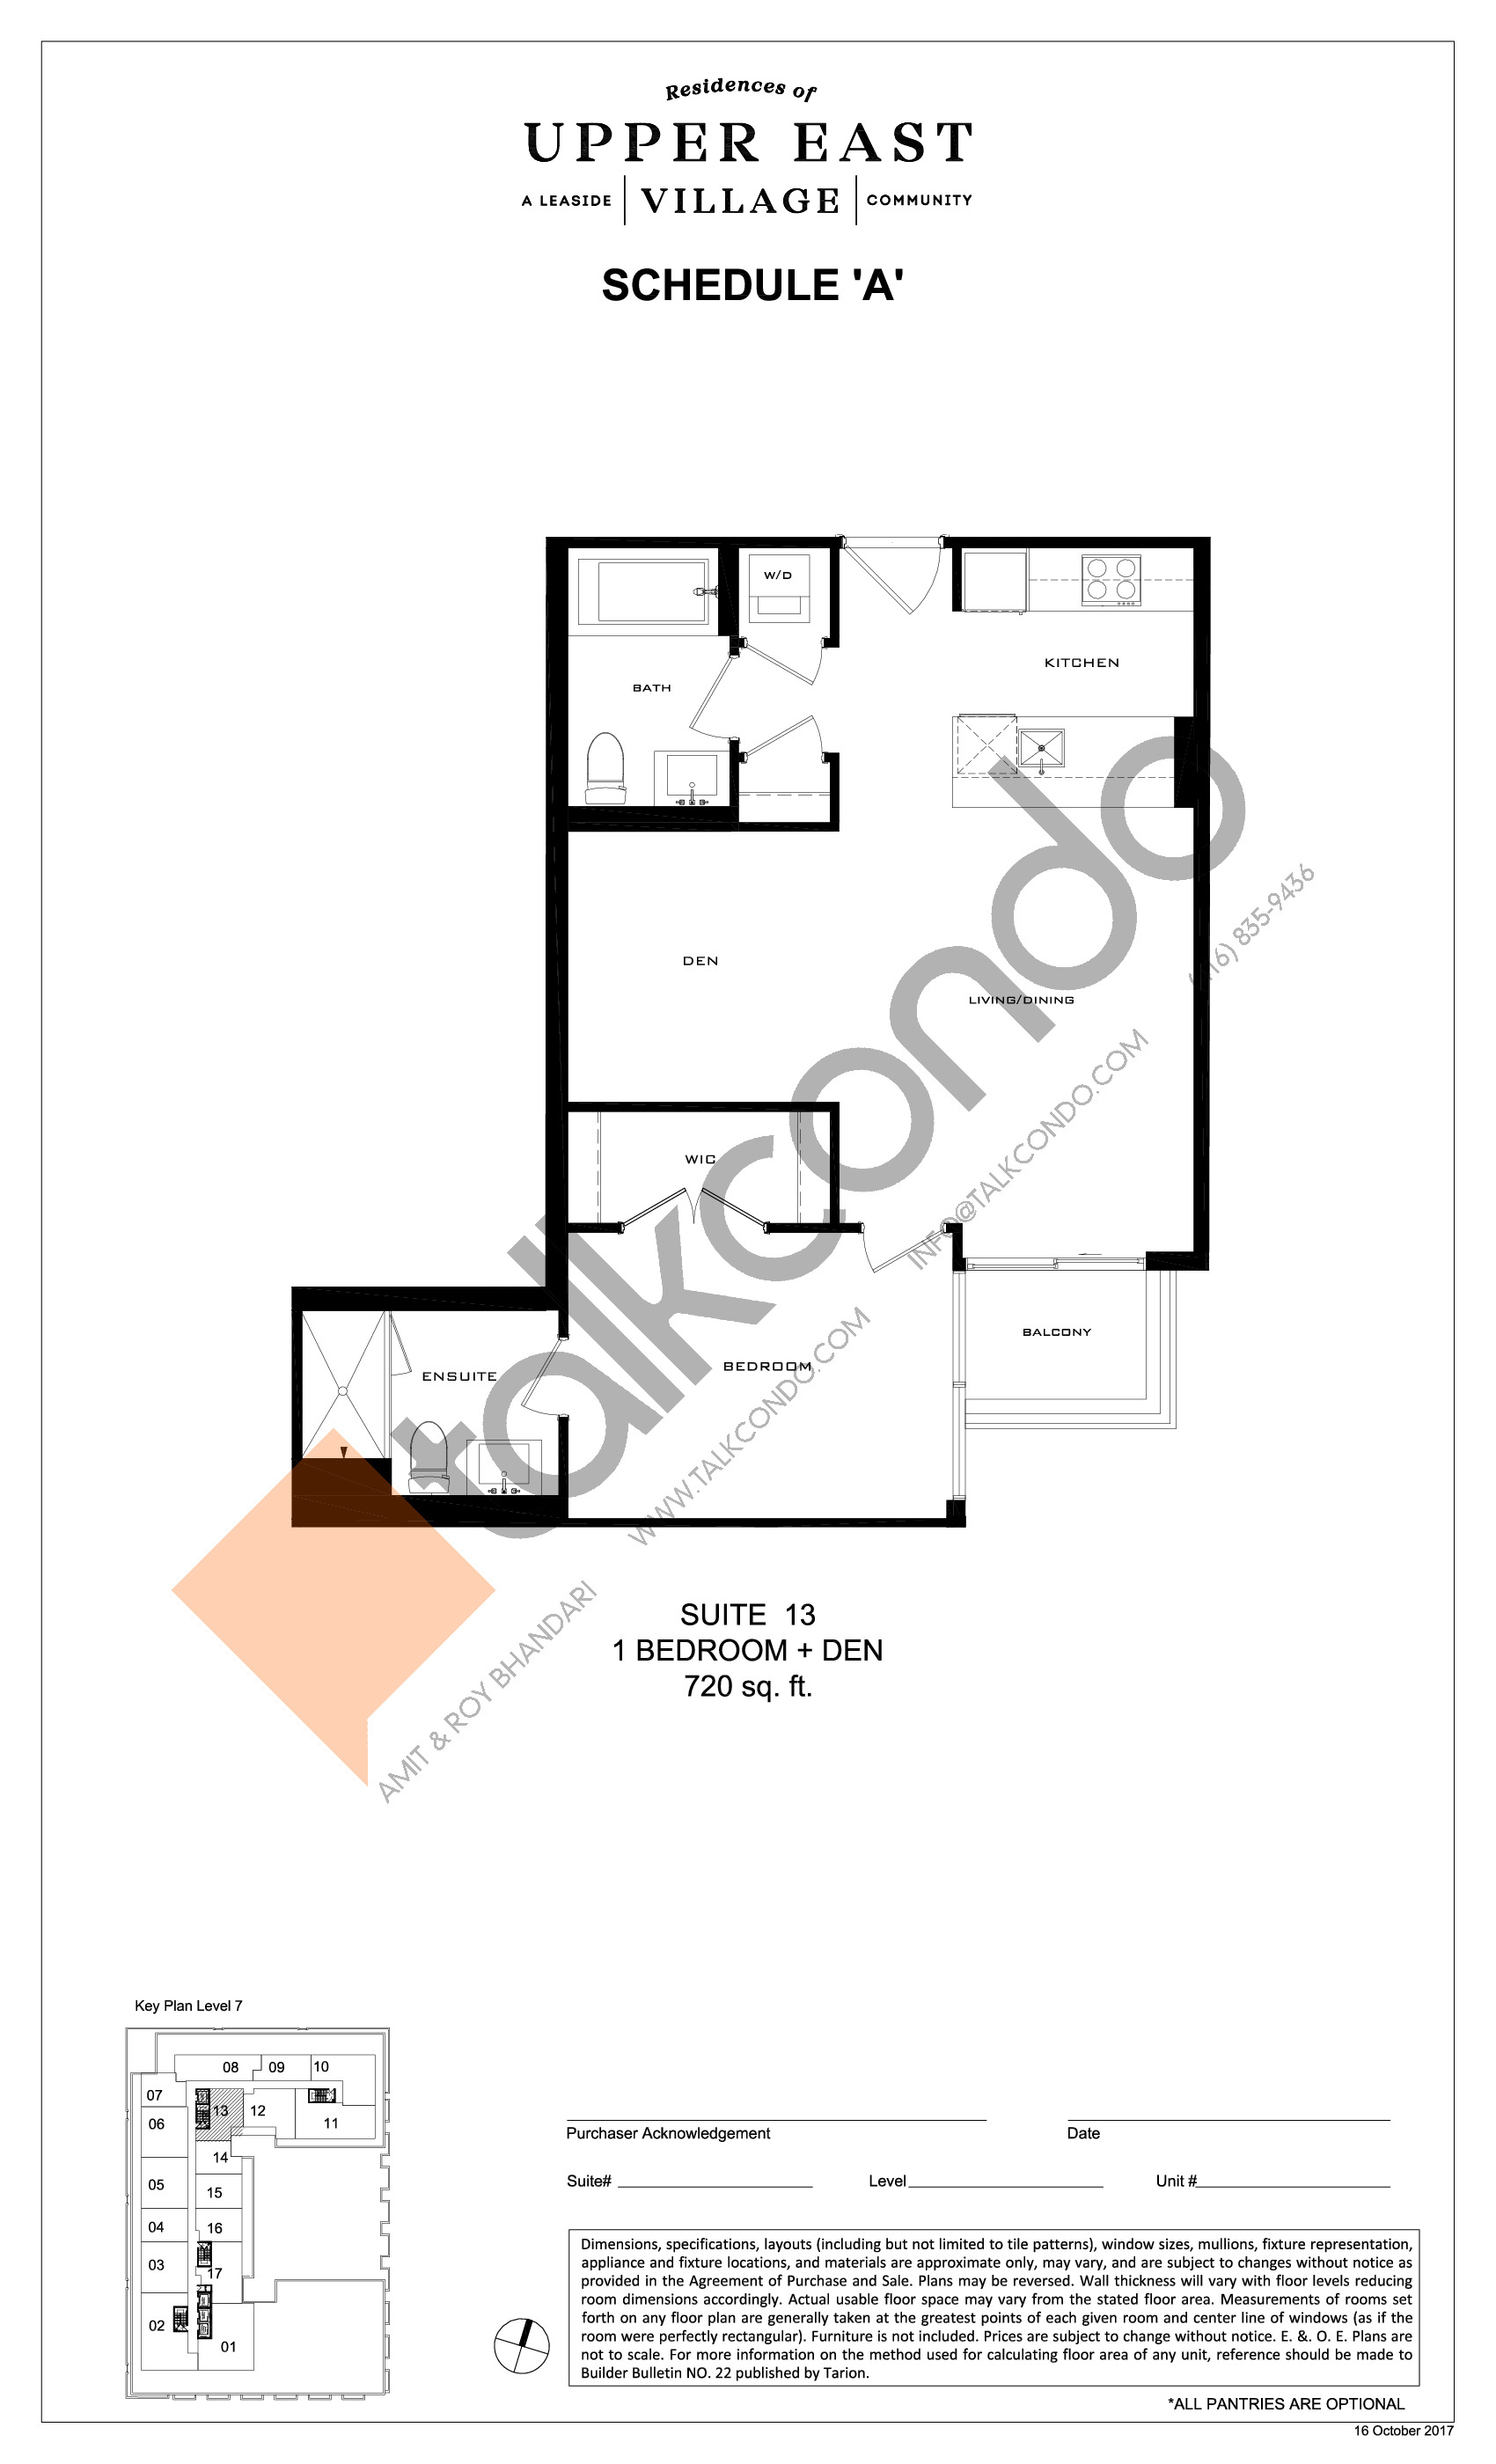 Suite 13 Floor Plan at Upper East Village Condos - 720 sq.ft